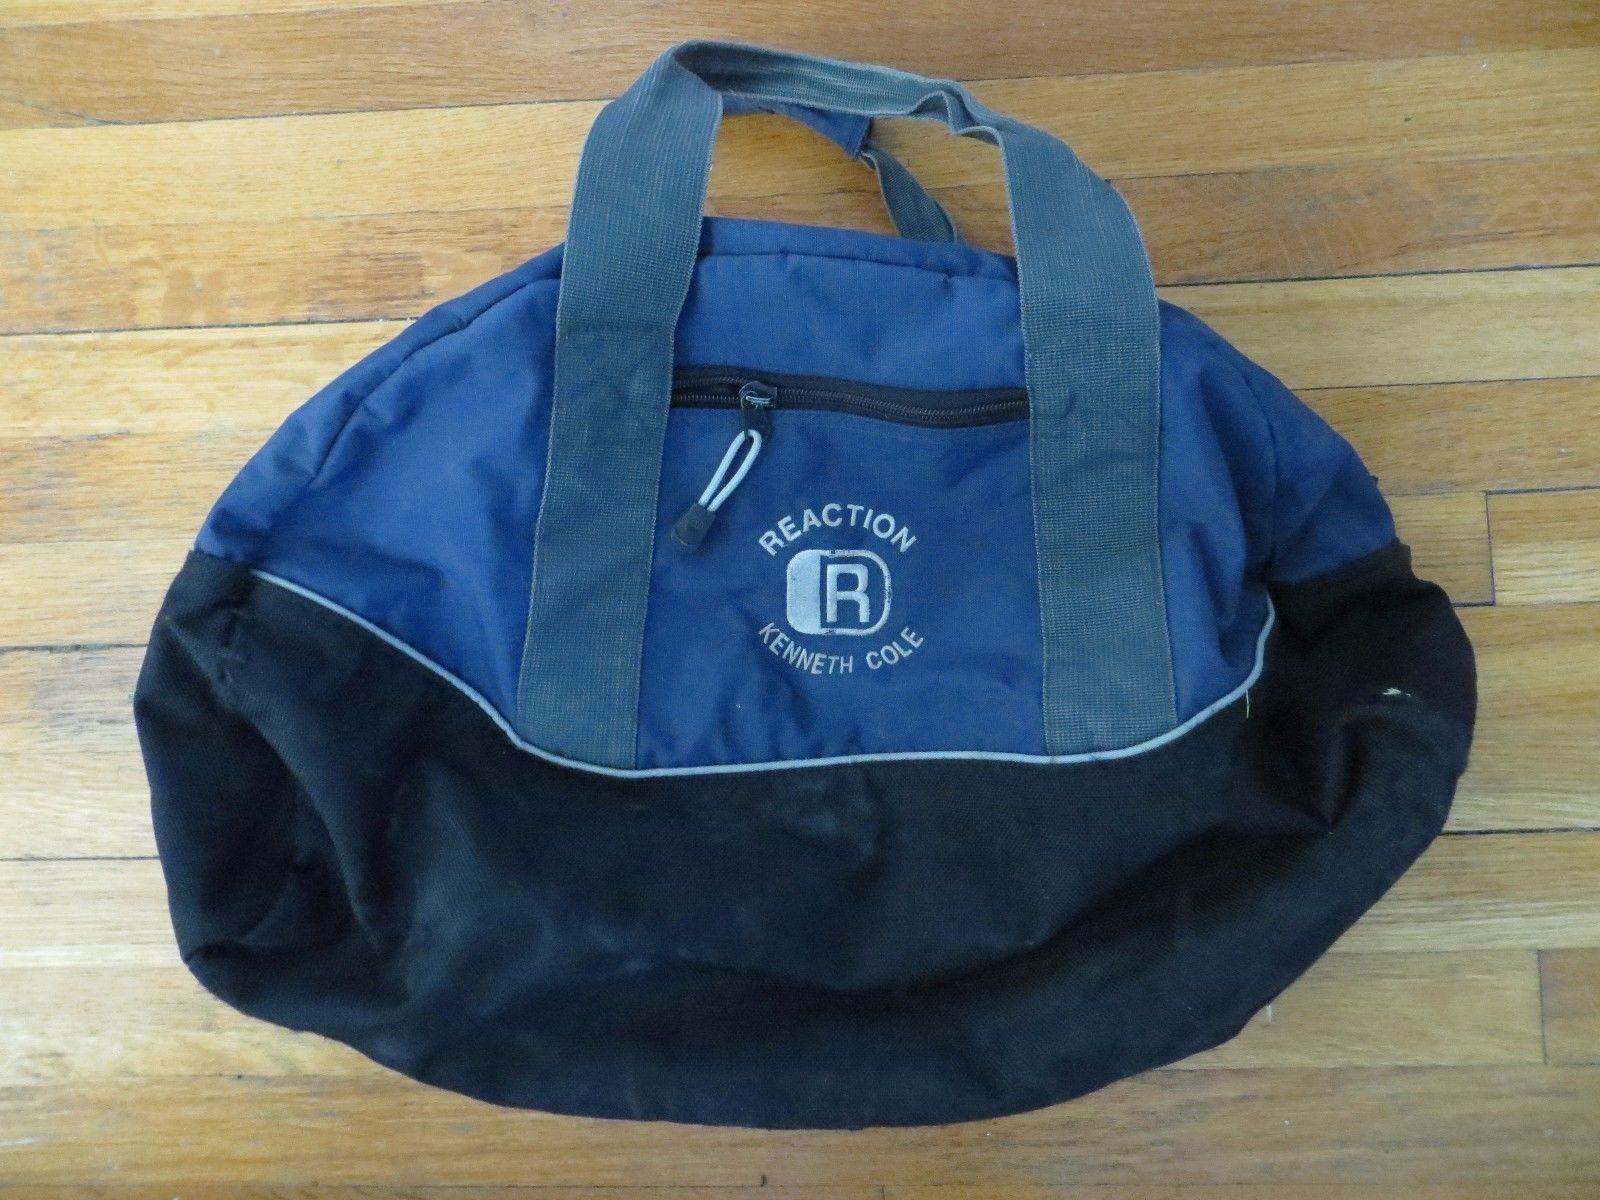 Kenneth Cole Reaction blue sporty duffle bag tote carry on travel gym overnight - $10.05